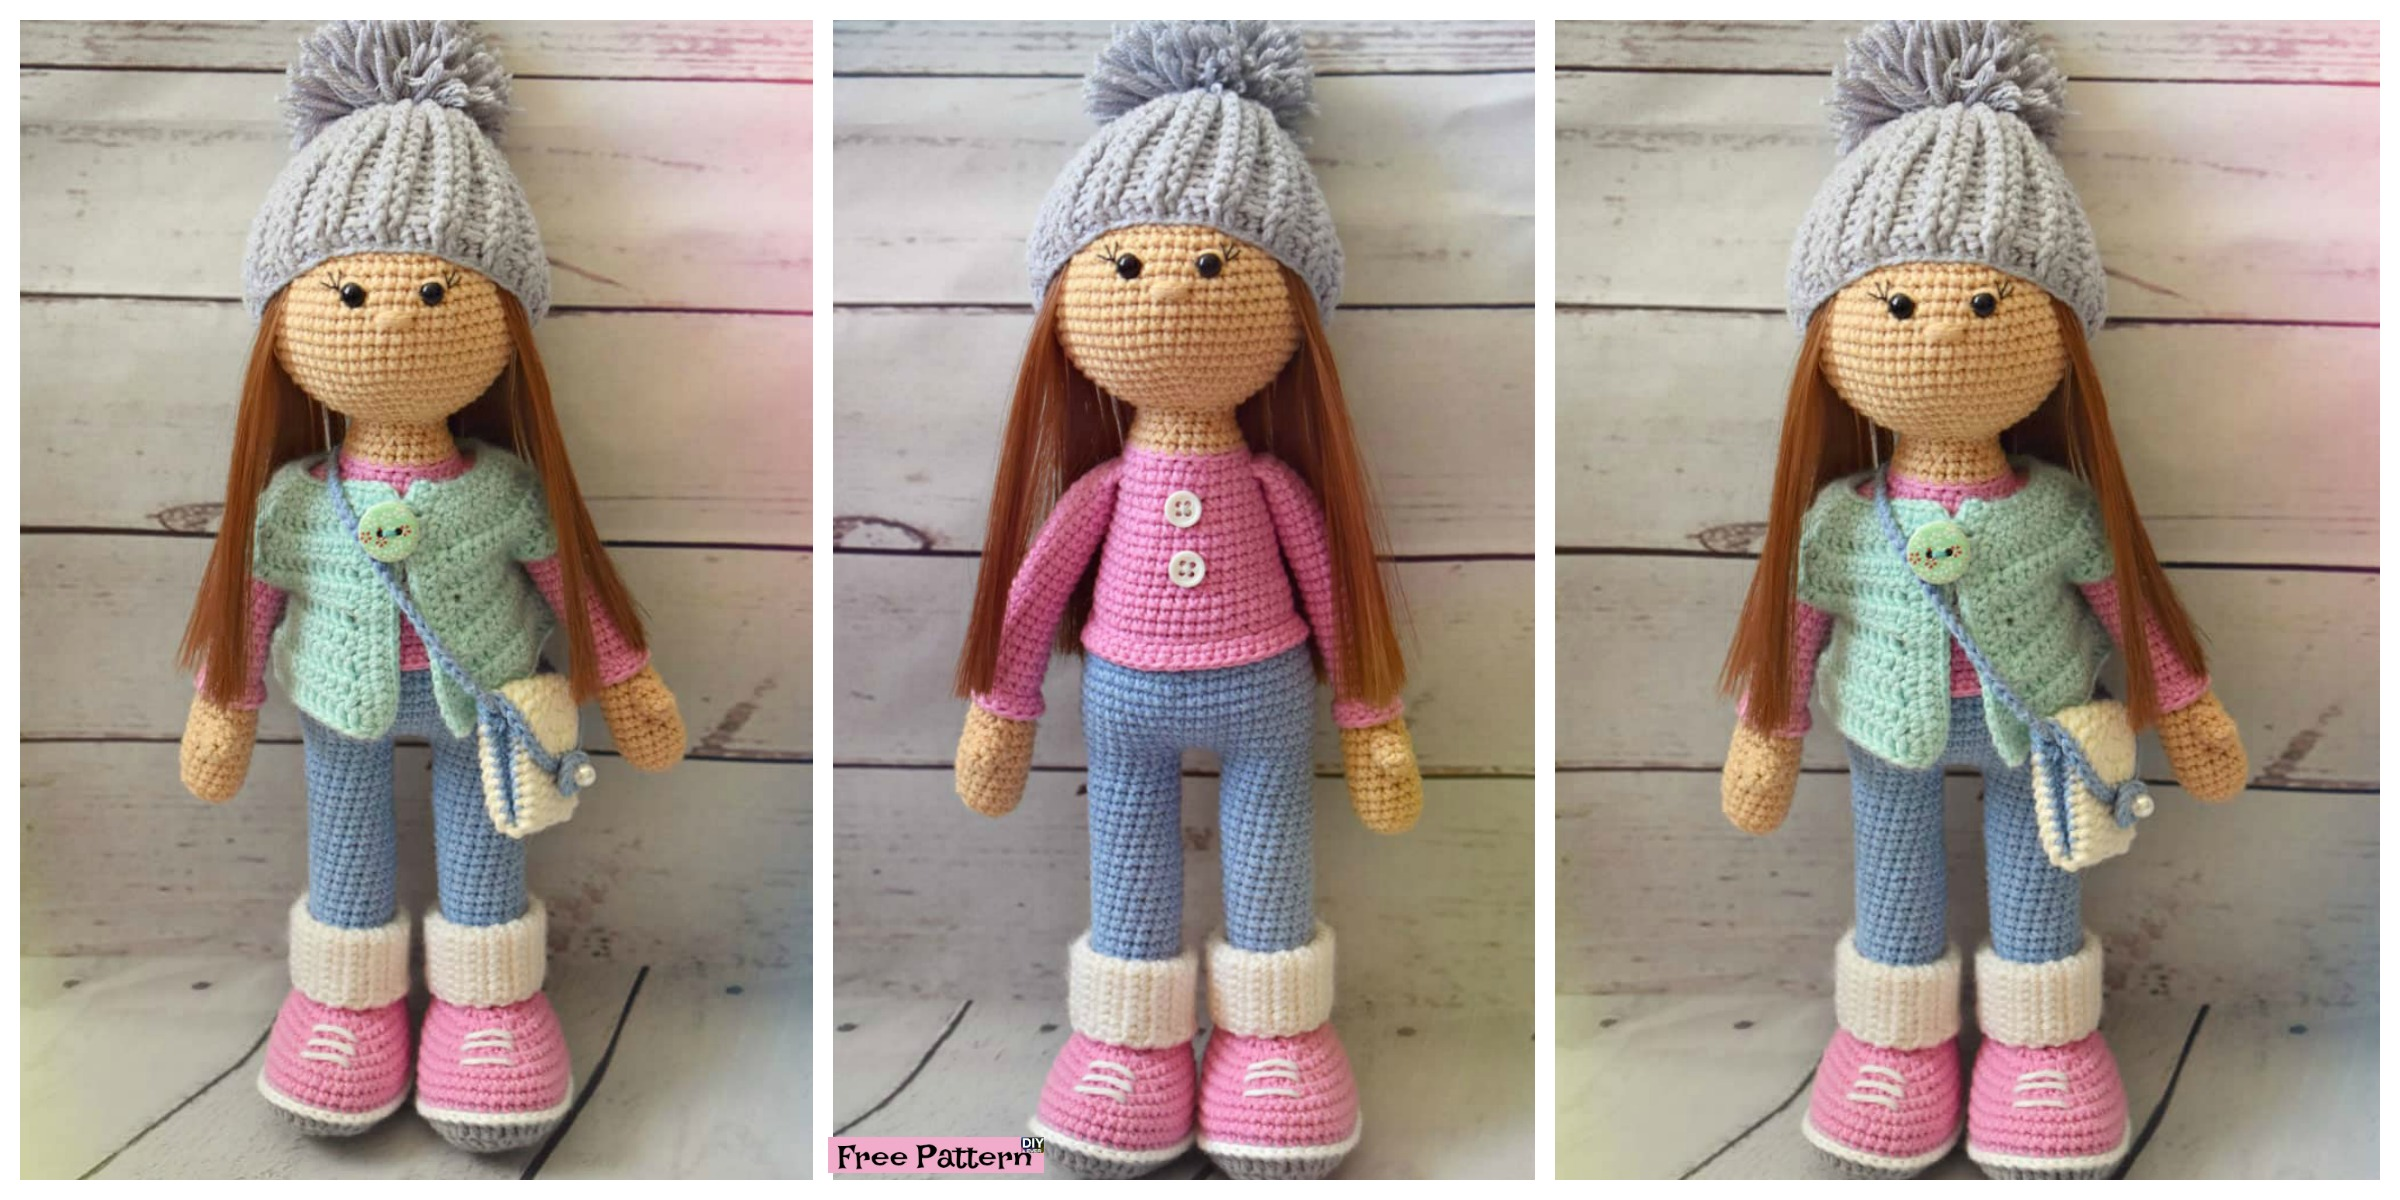 Adorable Crochet Molly Doll - Free Pattern - DIY 4 EVER